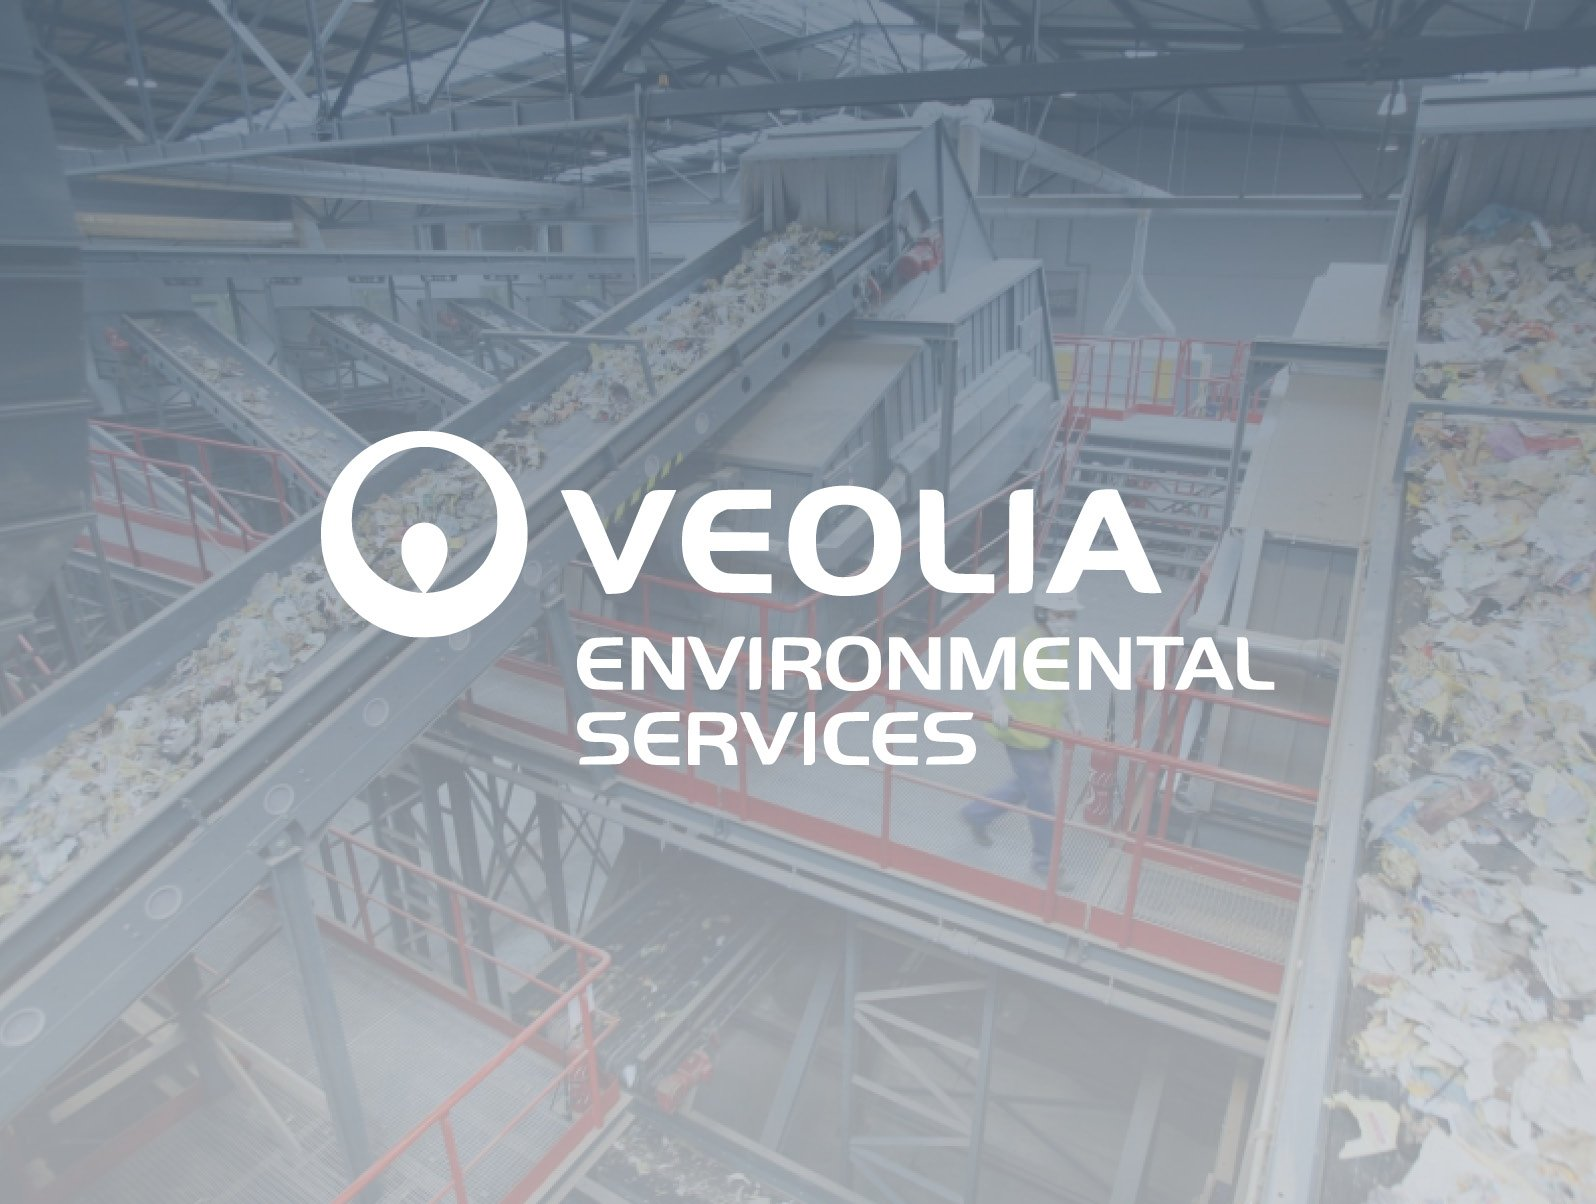 veolia-Customer Pages